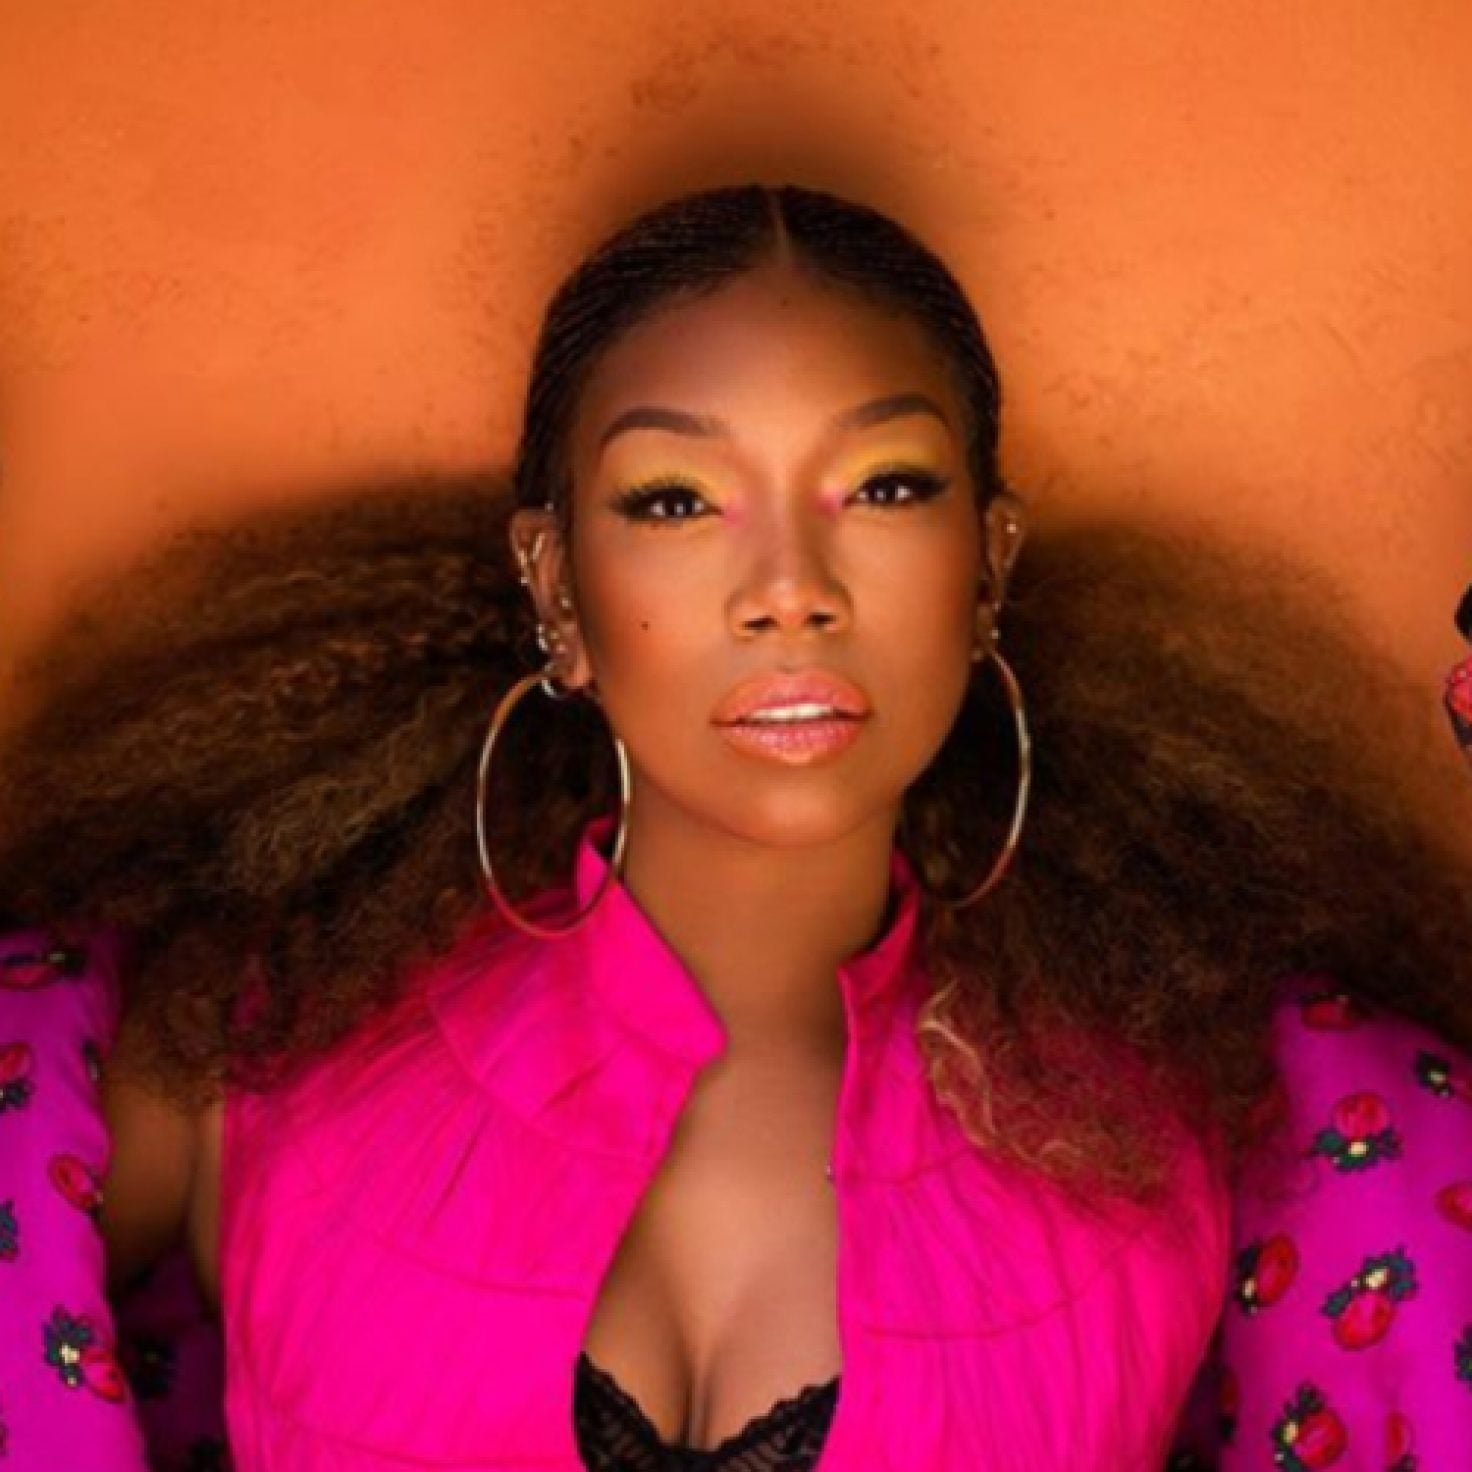 Brandy's New Album 'B7' Is The Ultimate Love Letter To Her 'Highest Self'